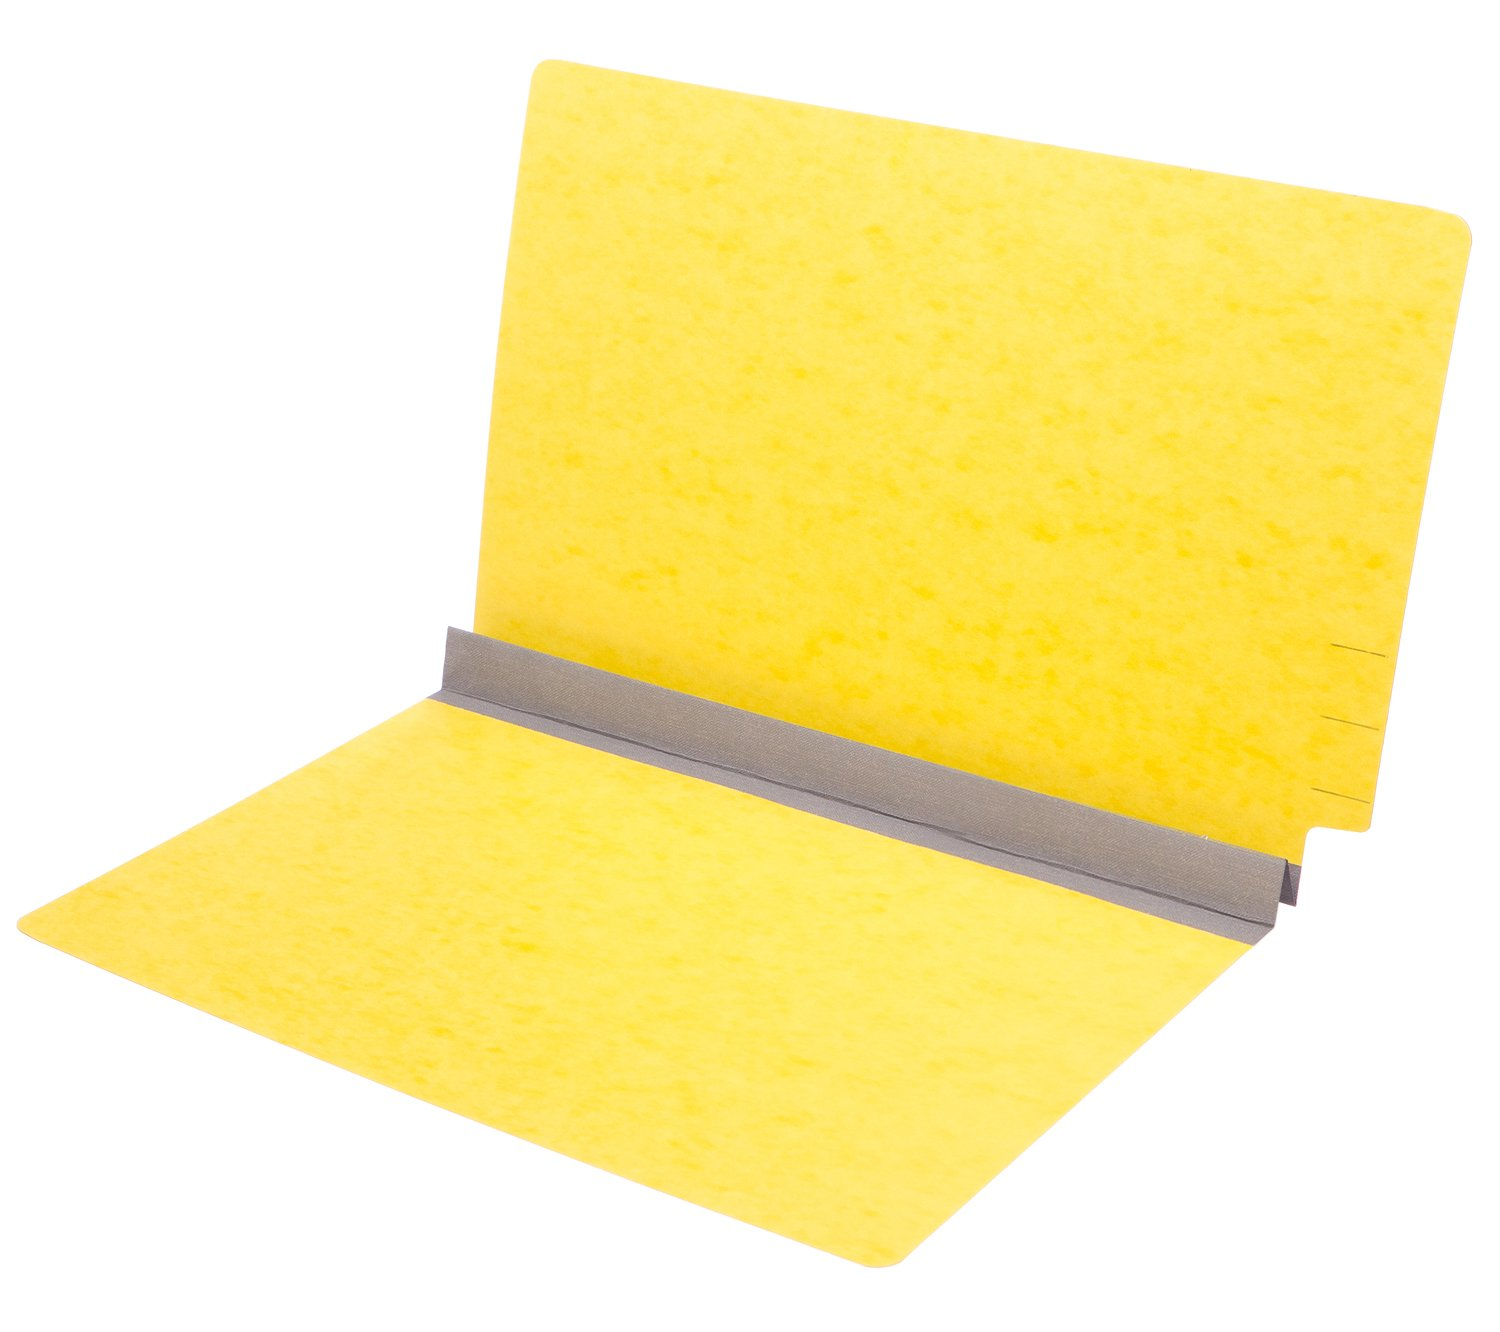 TAB Pressboard Expansion Folder 2'' Expansion Legal Size Canary 25/Box by TAB